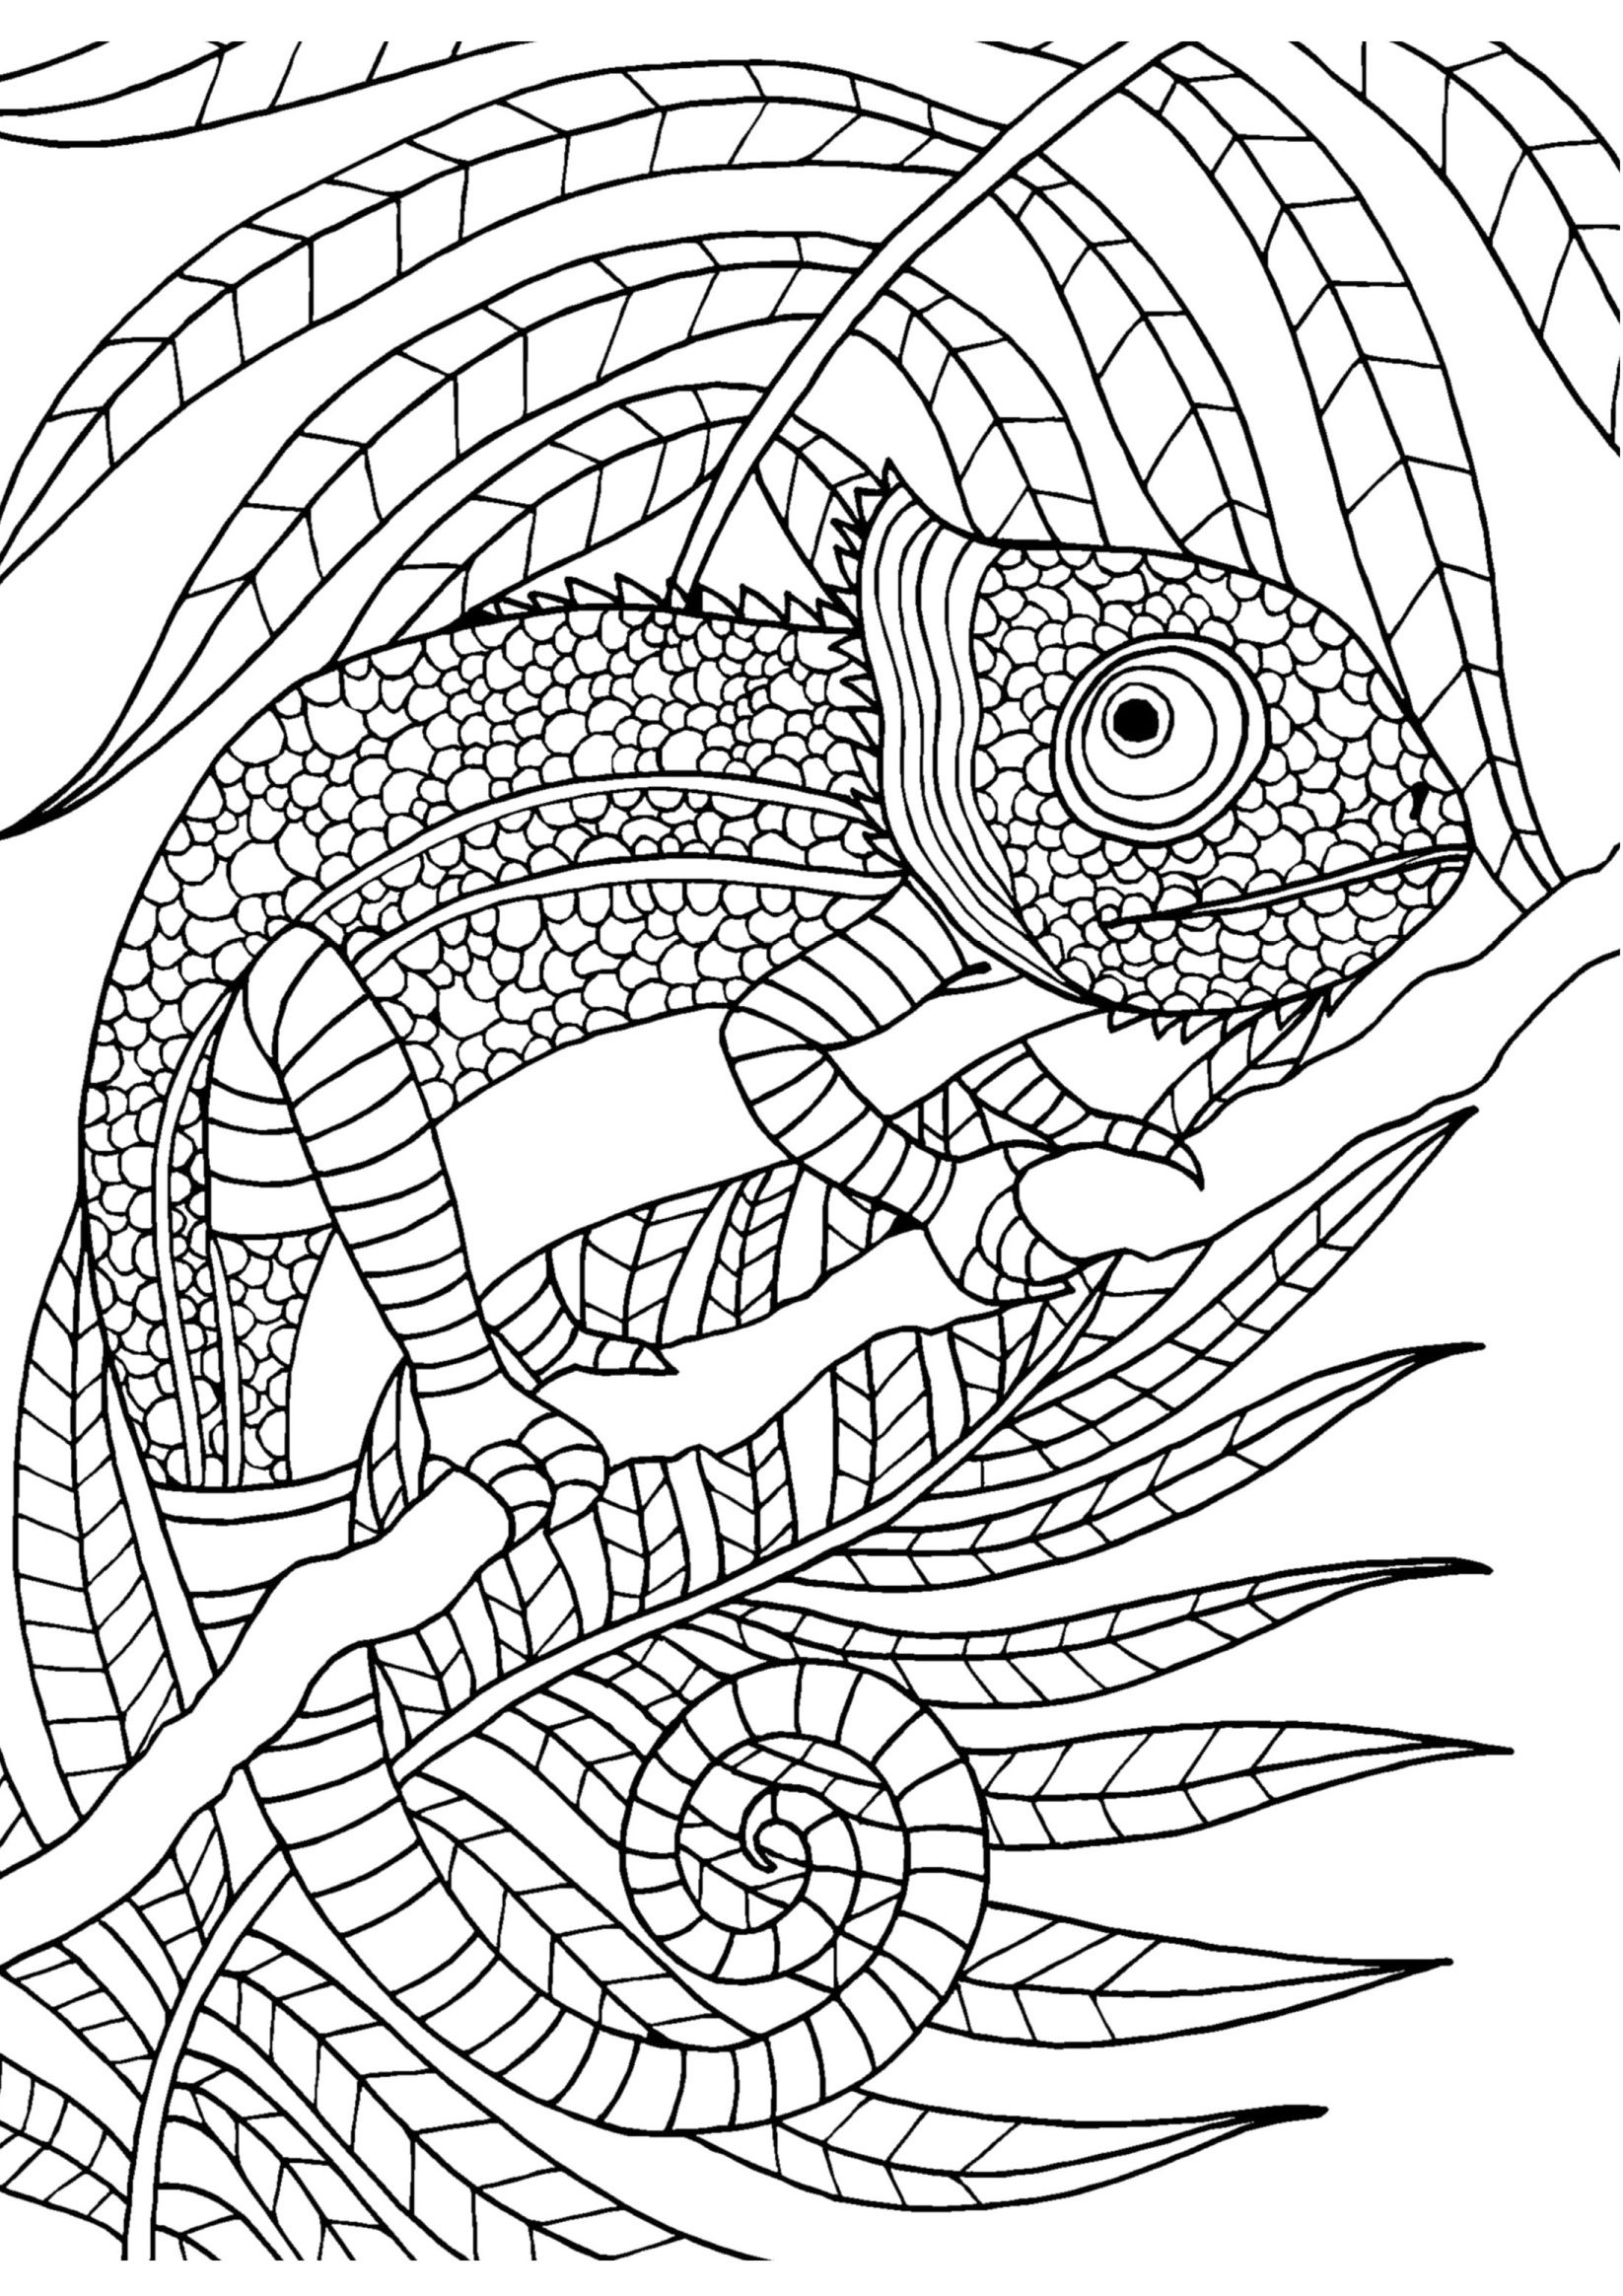 Chameleon adult colouring page